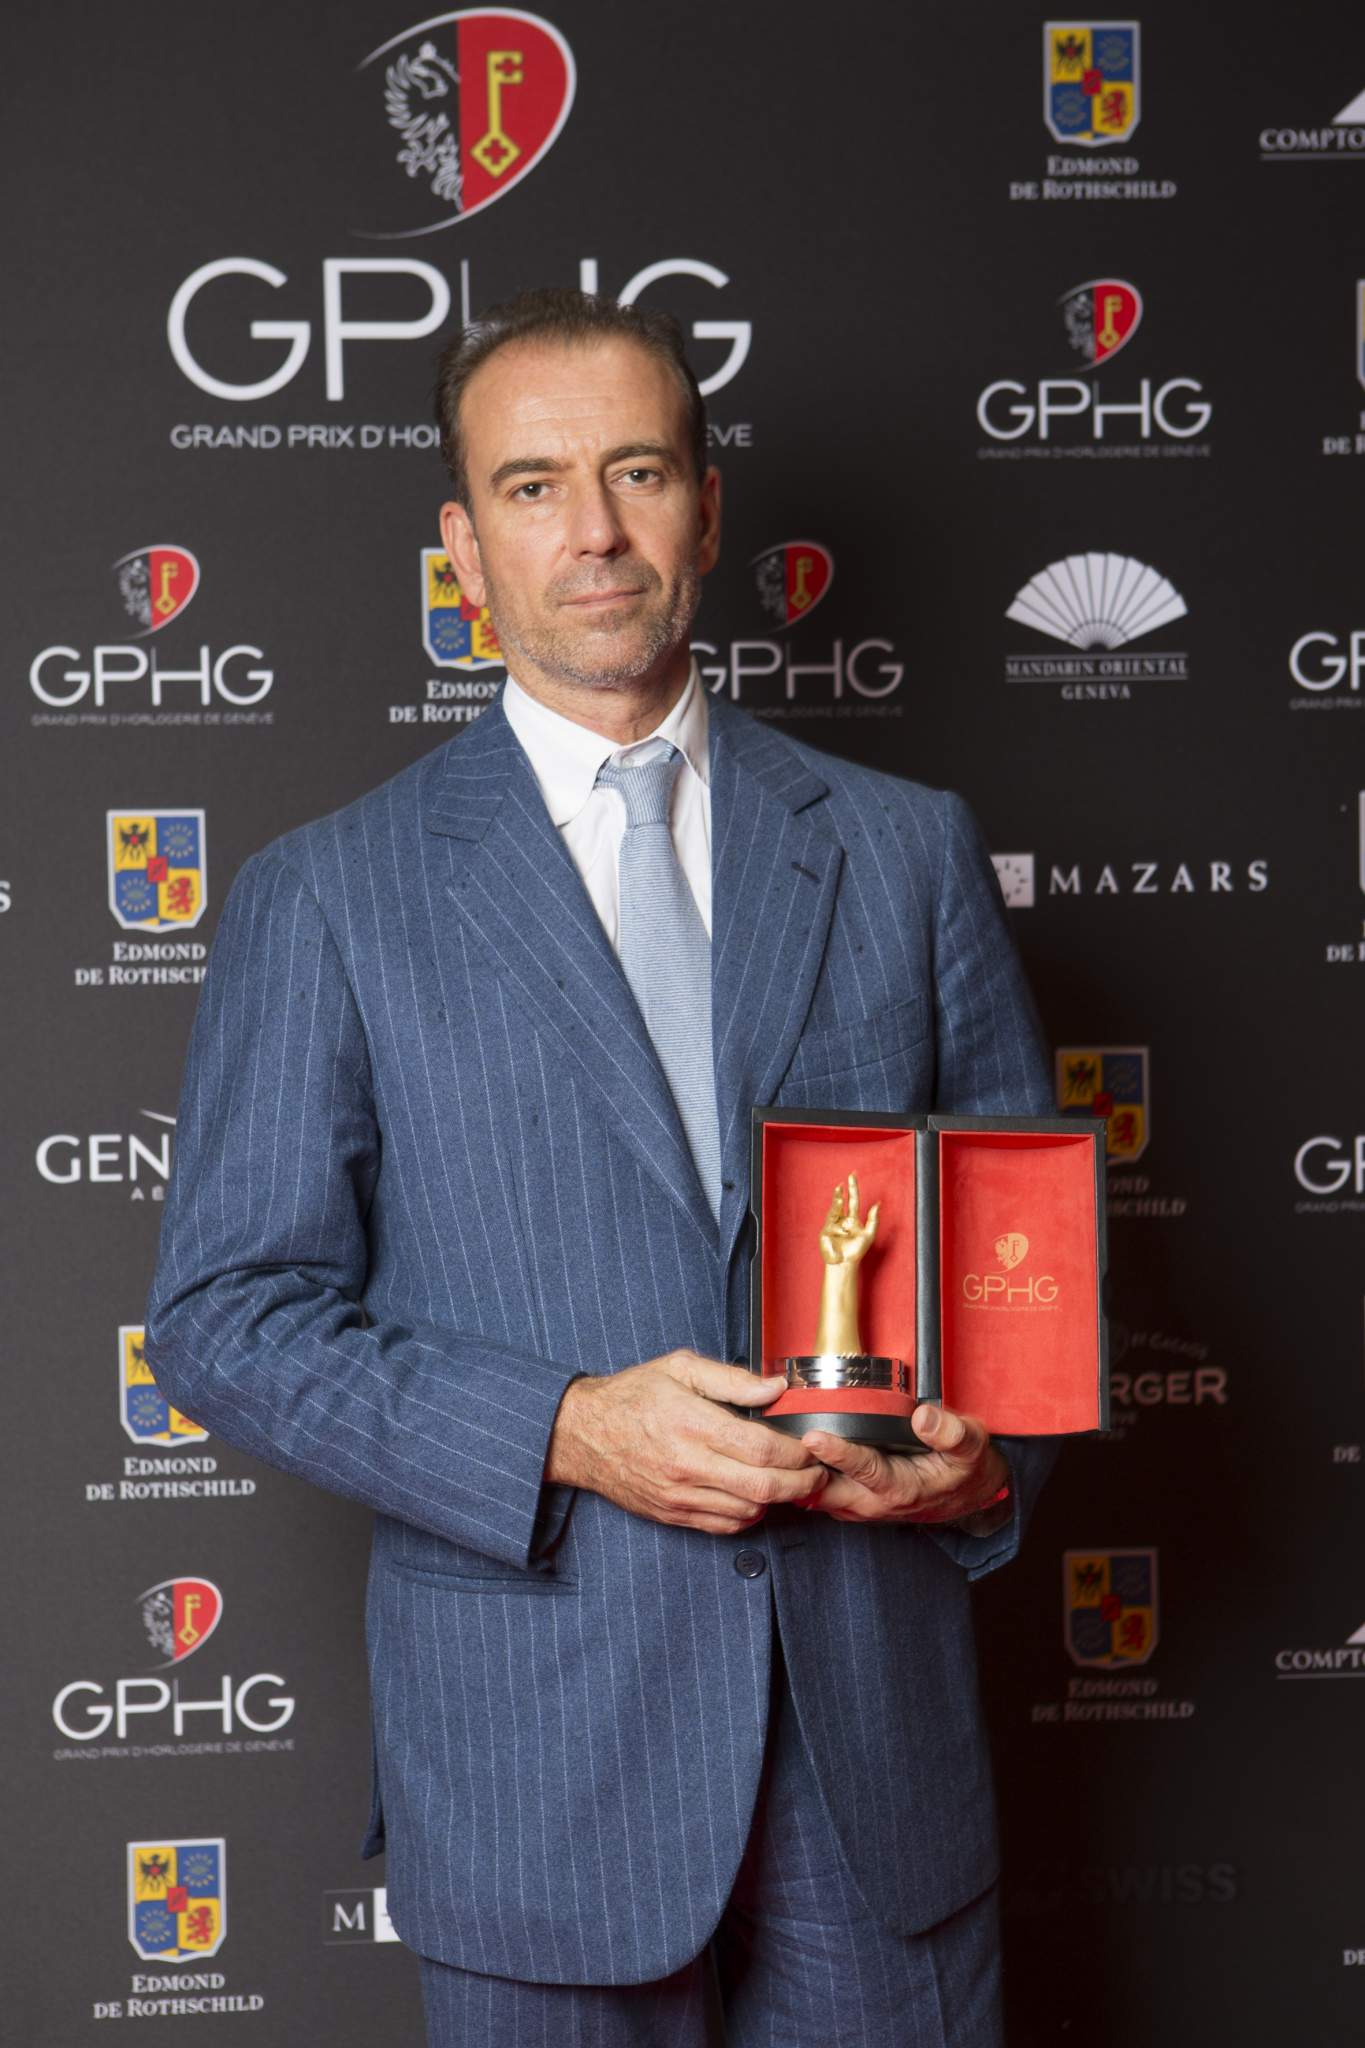 Mario Peserico (CEO of Eberhard & Co, winner of the Sports Watch Prize 2016)